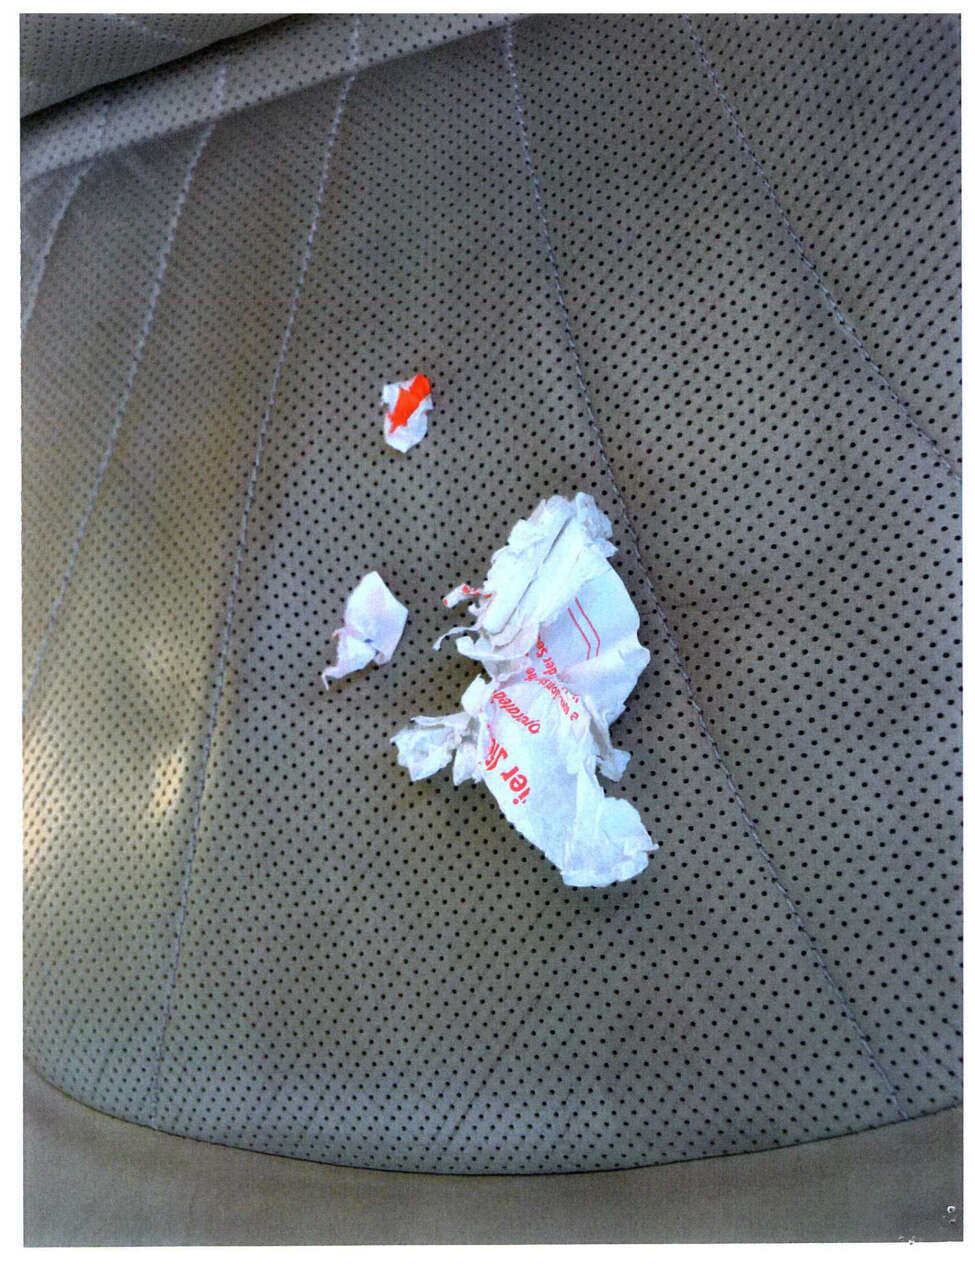 Schoharie County District Attorney is seeking a DNA sample from Nauman Hussain after this crumbled up sticker was found in his car on Oct. 10, four days after the limo crashed that killed 20.